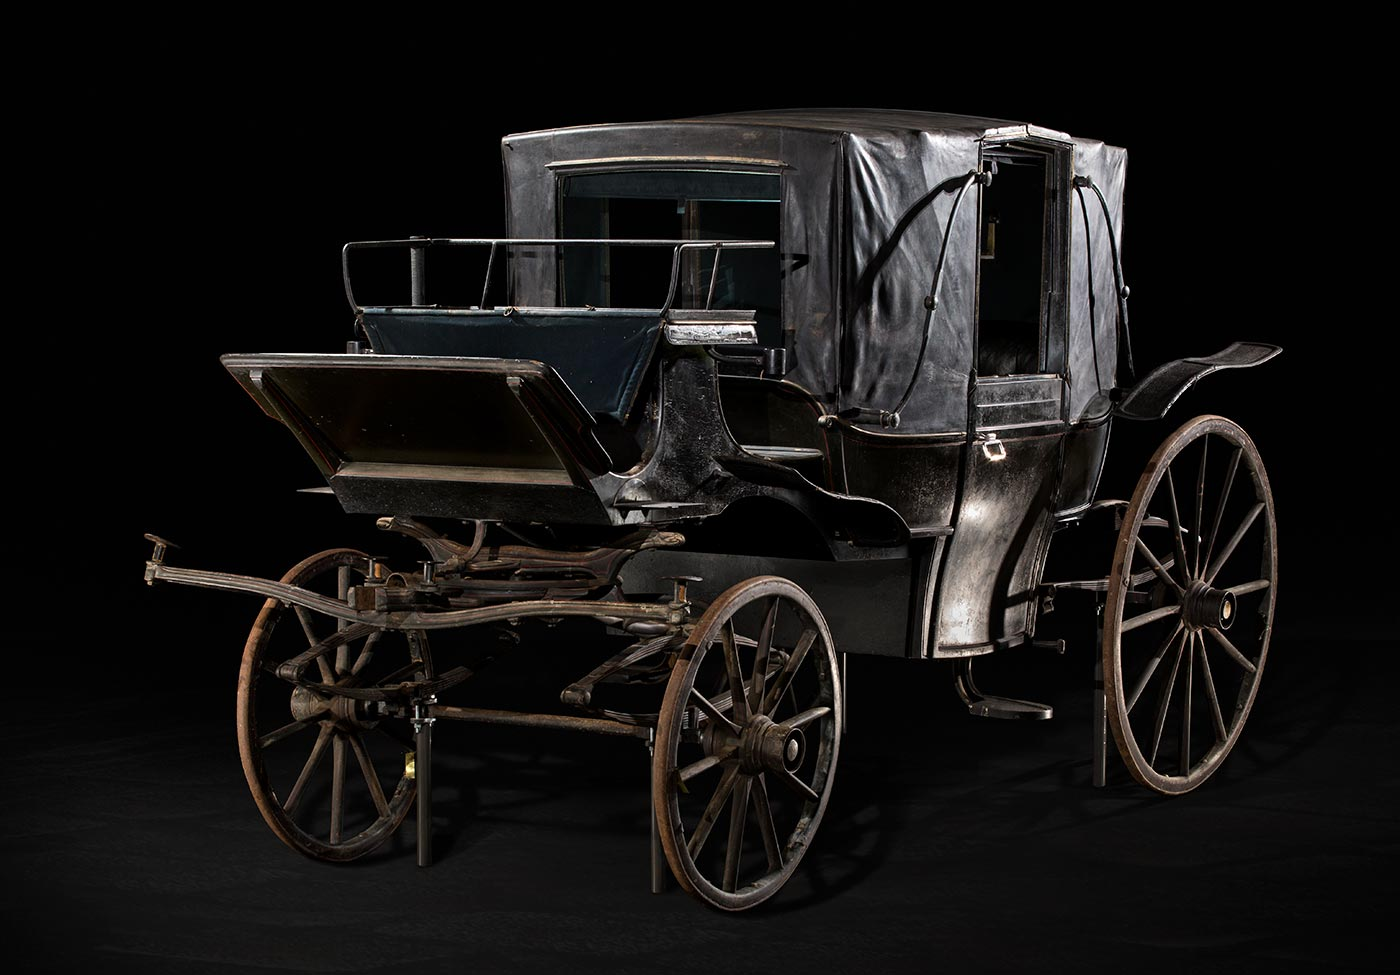 A carriage photographed in a studio.